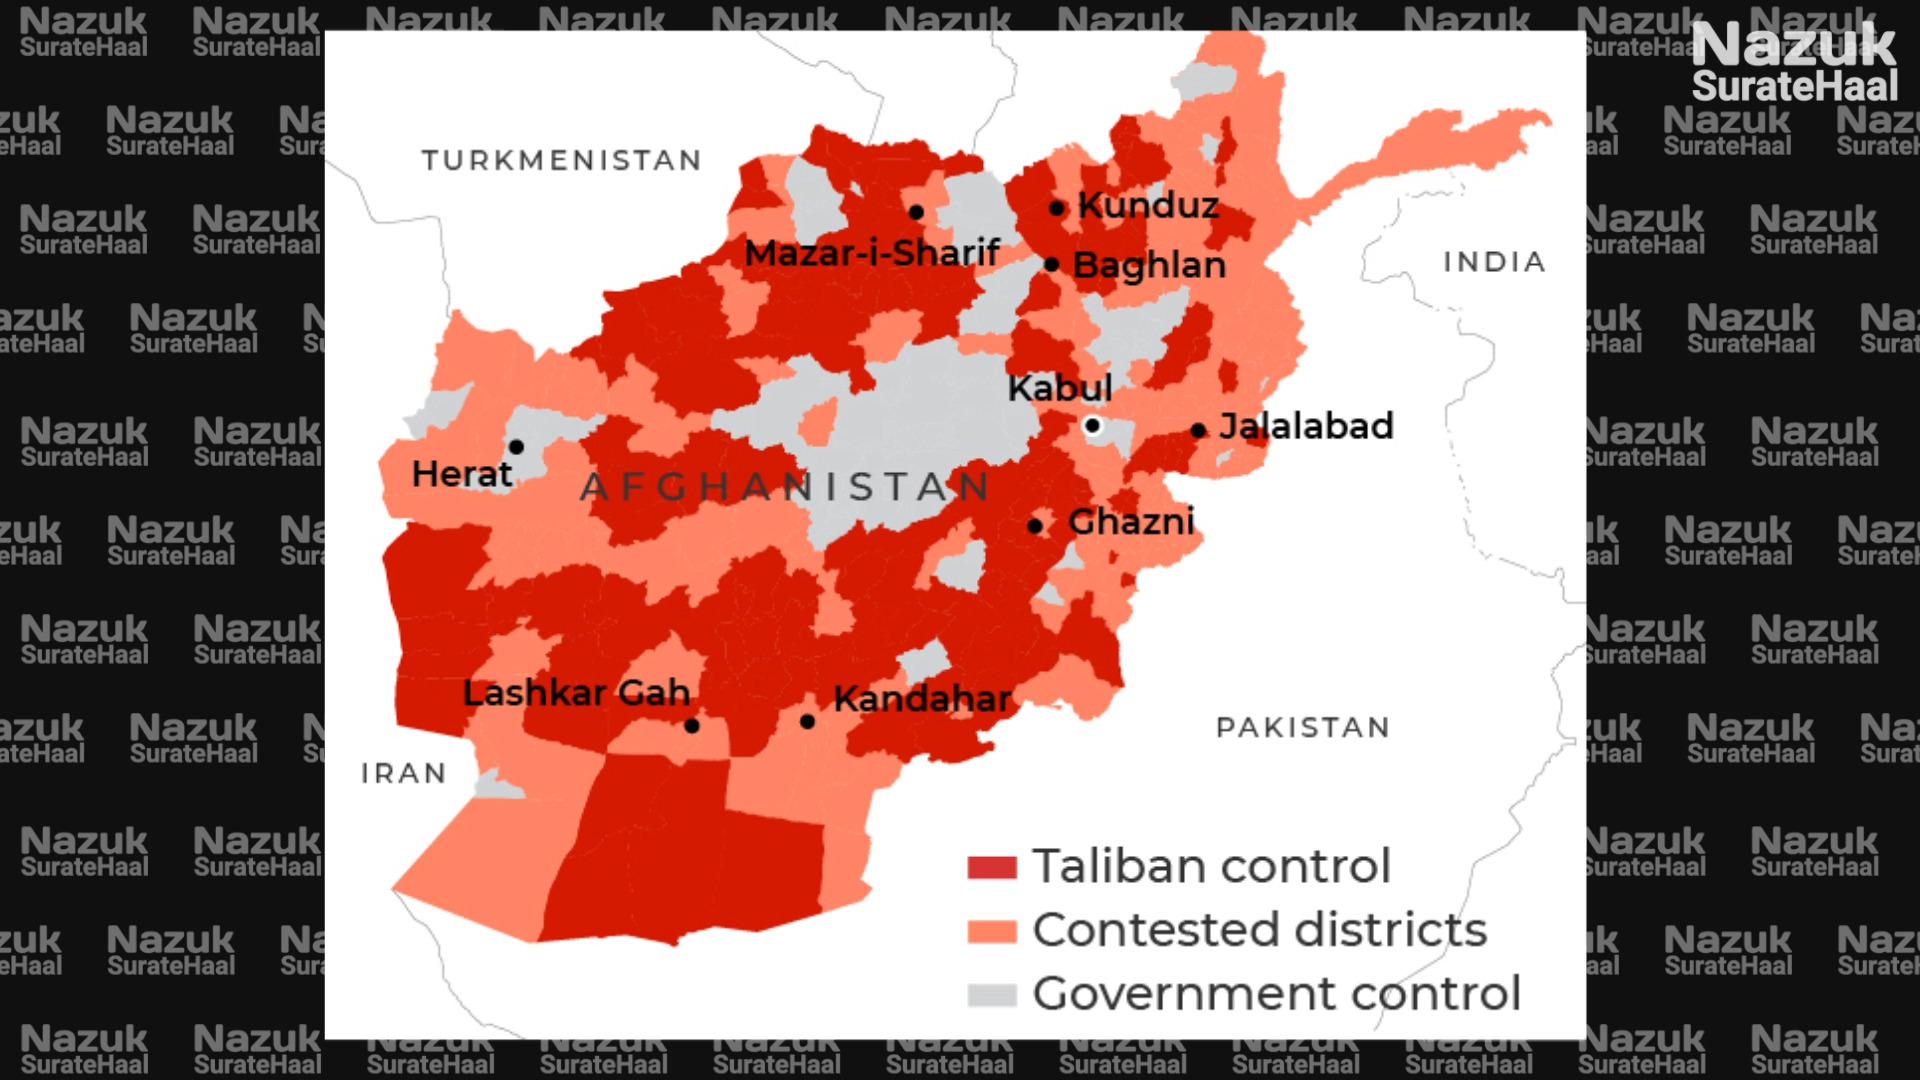 Areas controlled by Taliban in Afghanistan